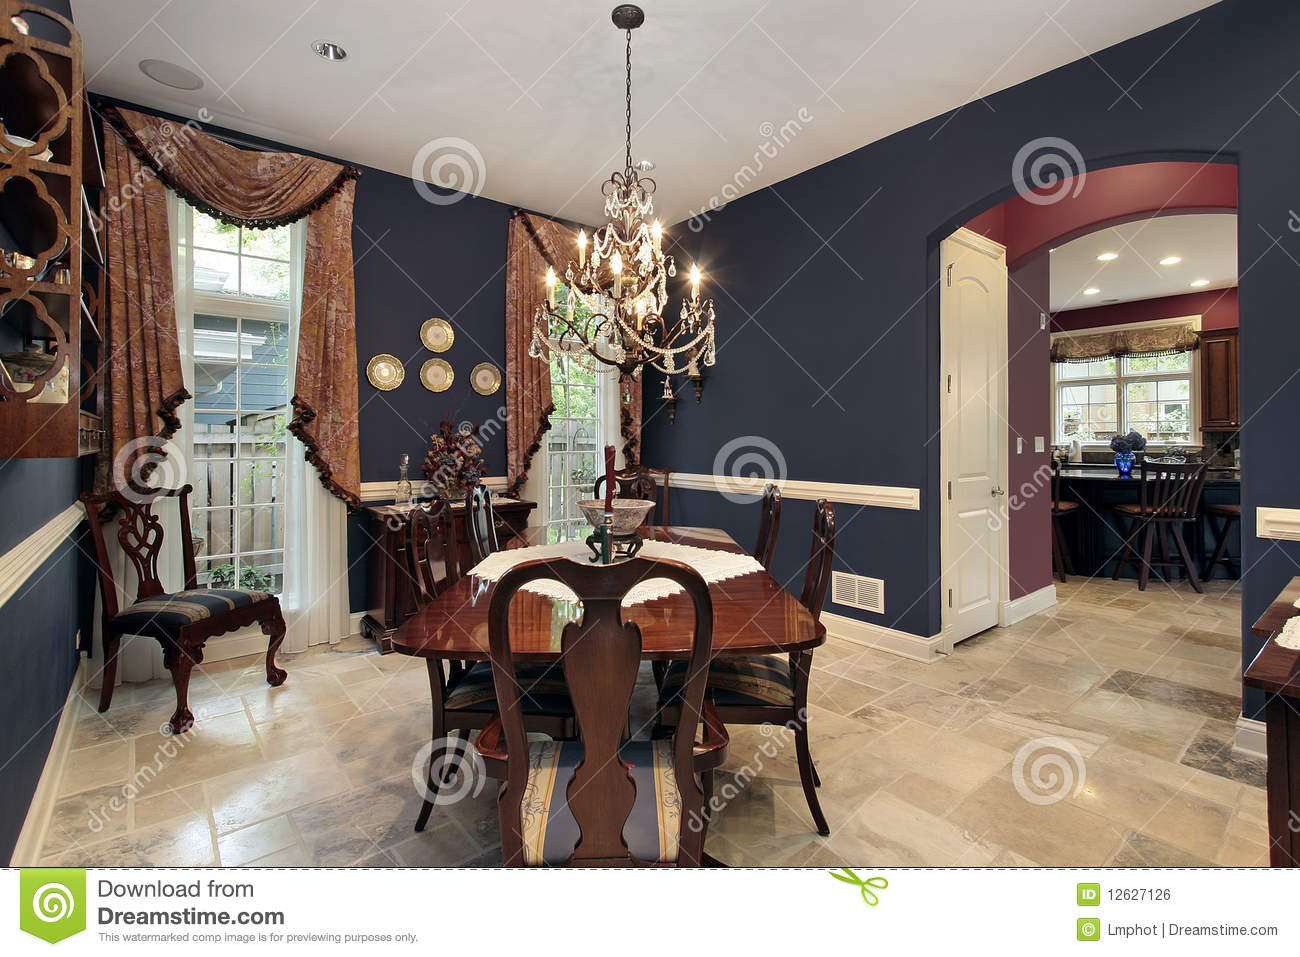 Dining Room With Arch Entry Stock Photo Image 12627126